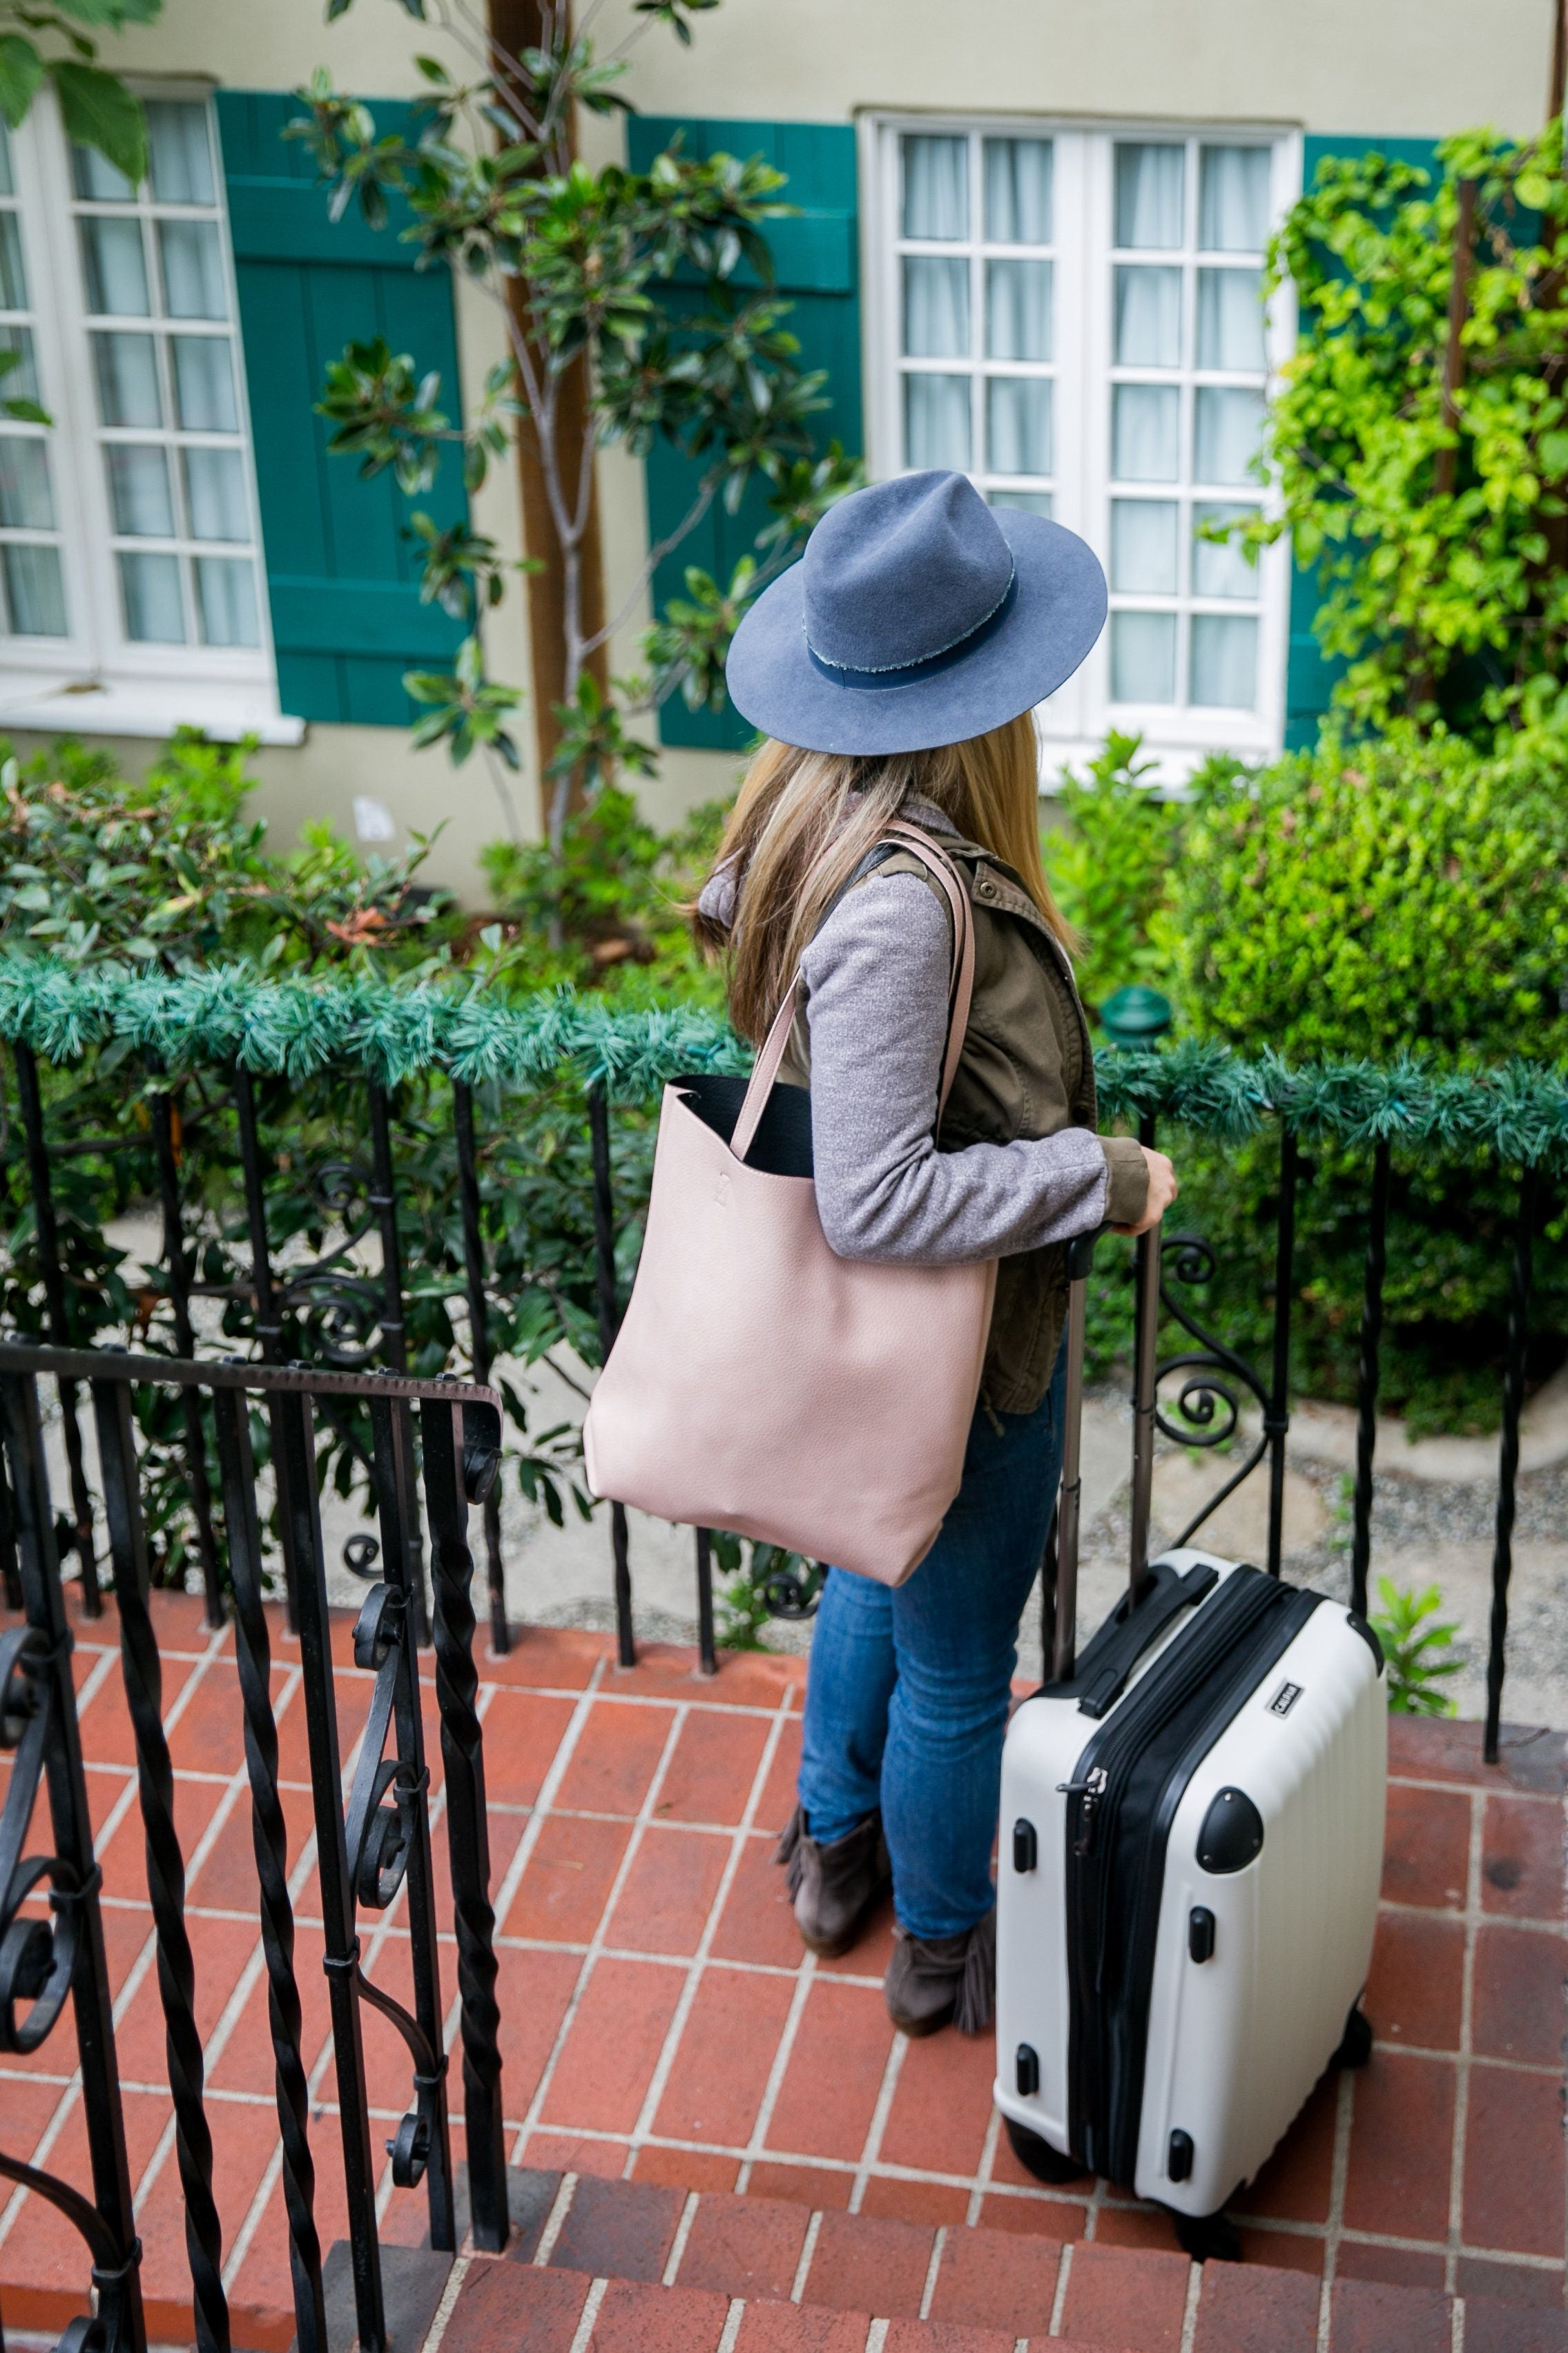 Lady packed and ready to travel with a tote bag and carry on suitcase